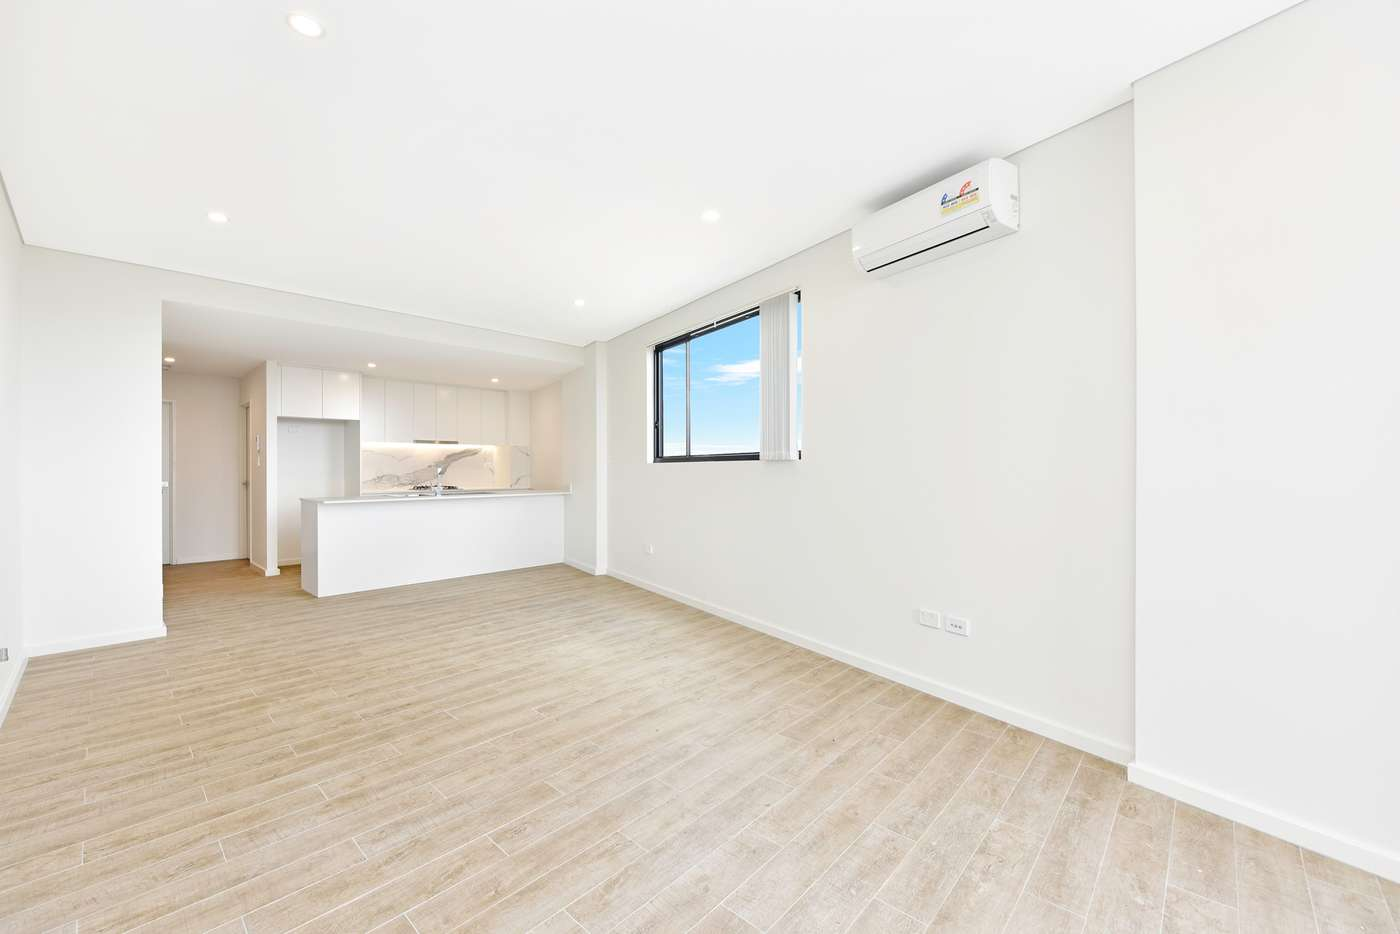 Main view of Homely apartment listing, 201/3 Balmoral Street, Blacktown NSW 2148